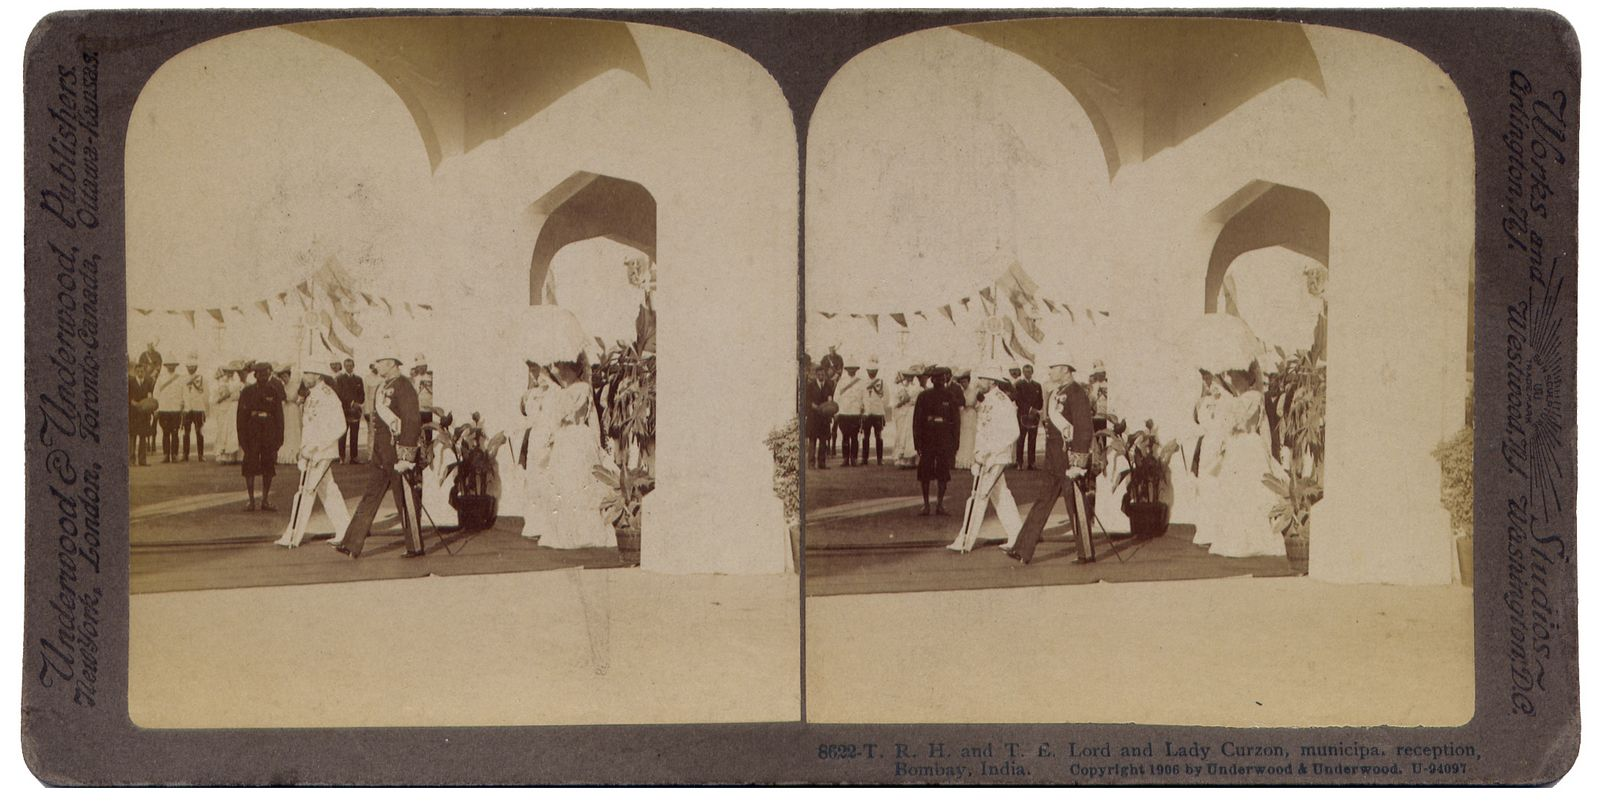 Lord and Lady Curzon, municipa. reception Bombay India